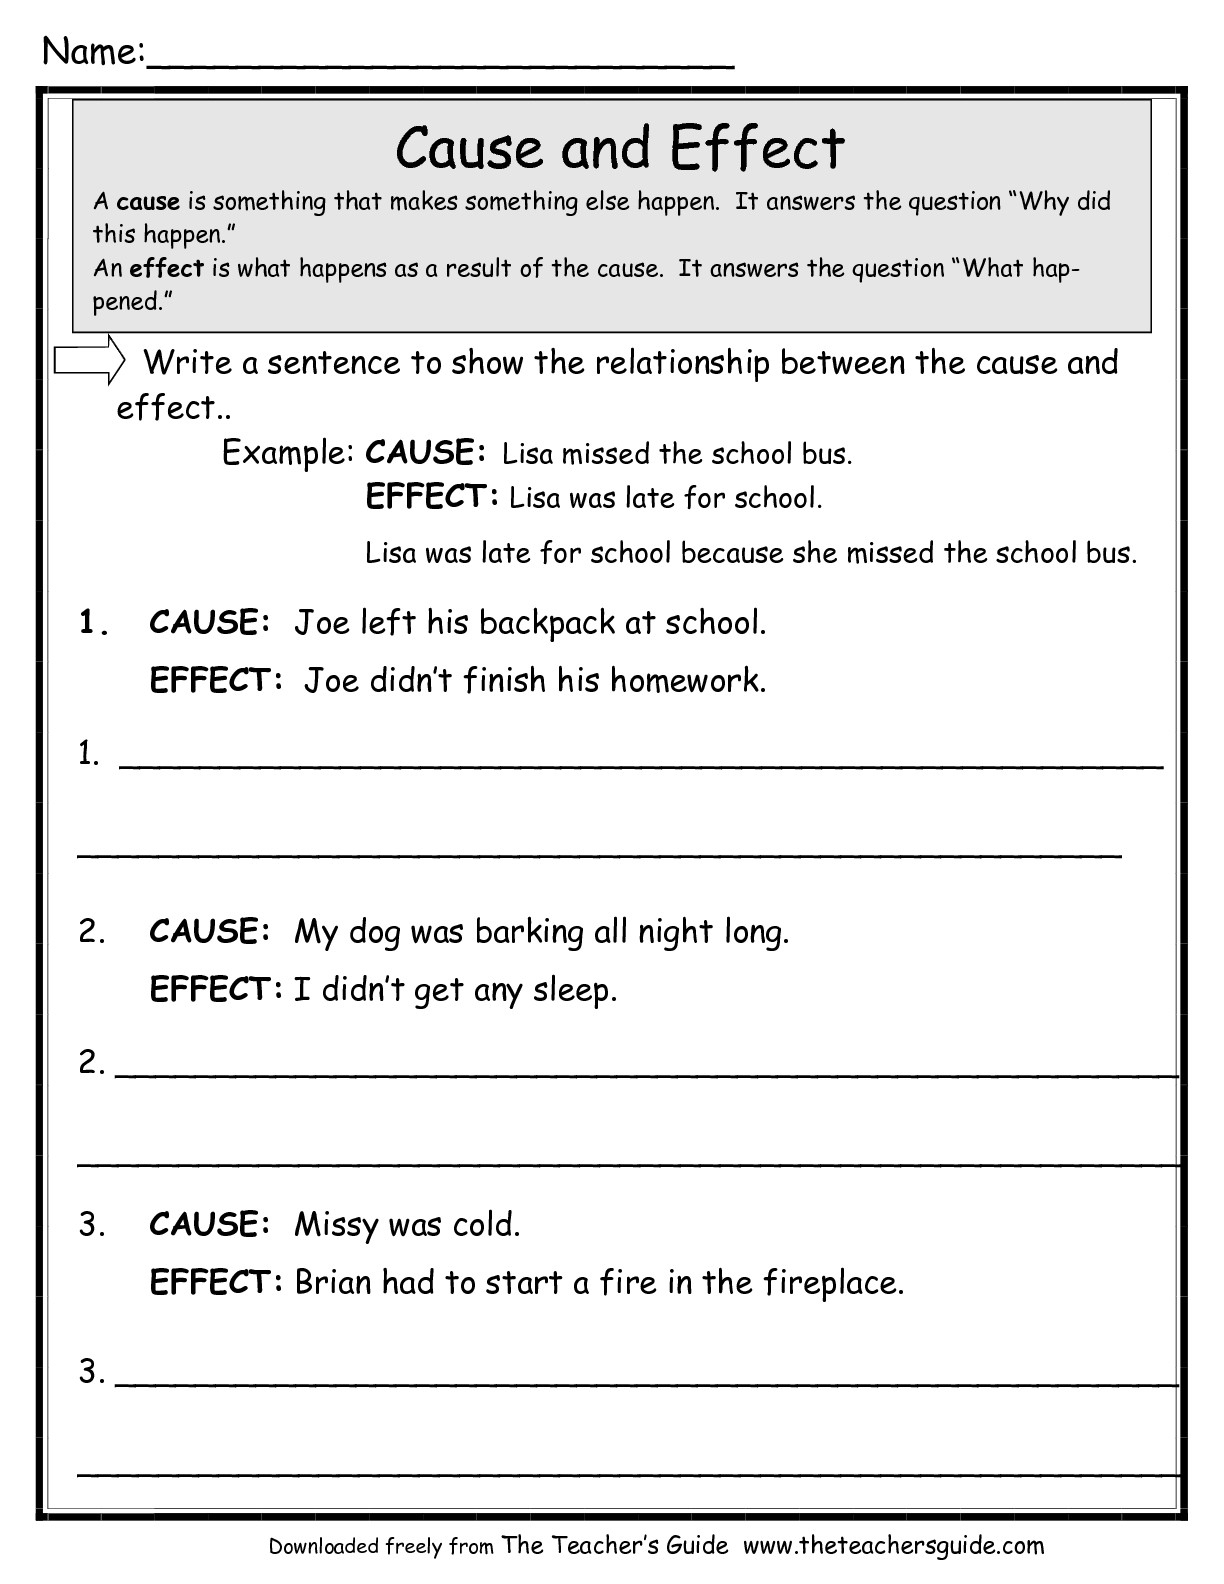 Free Reading Worksheets From The Teacher's Guide | Printable Literature Worksheets